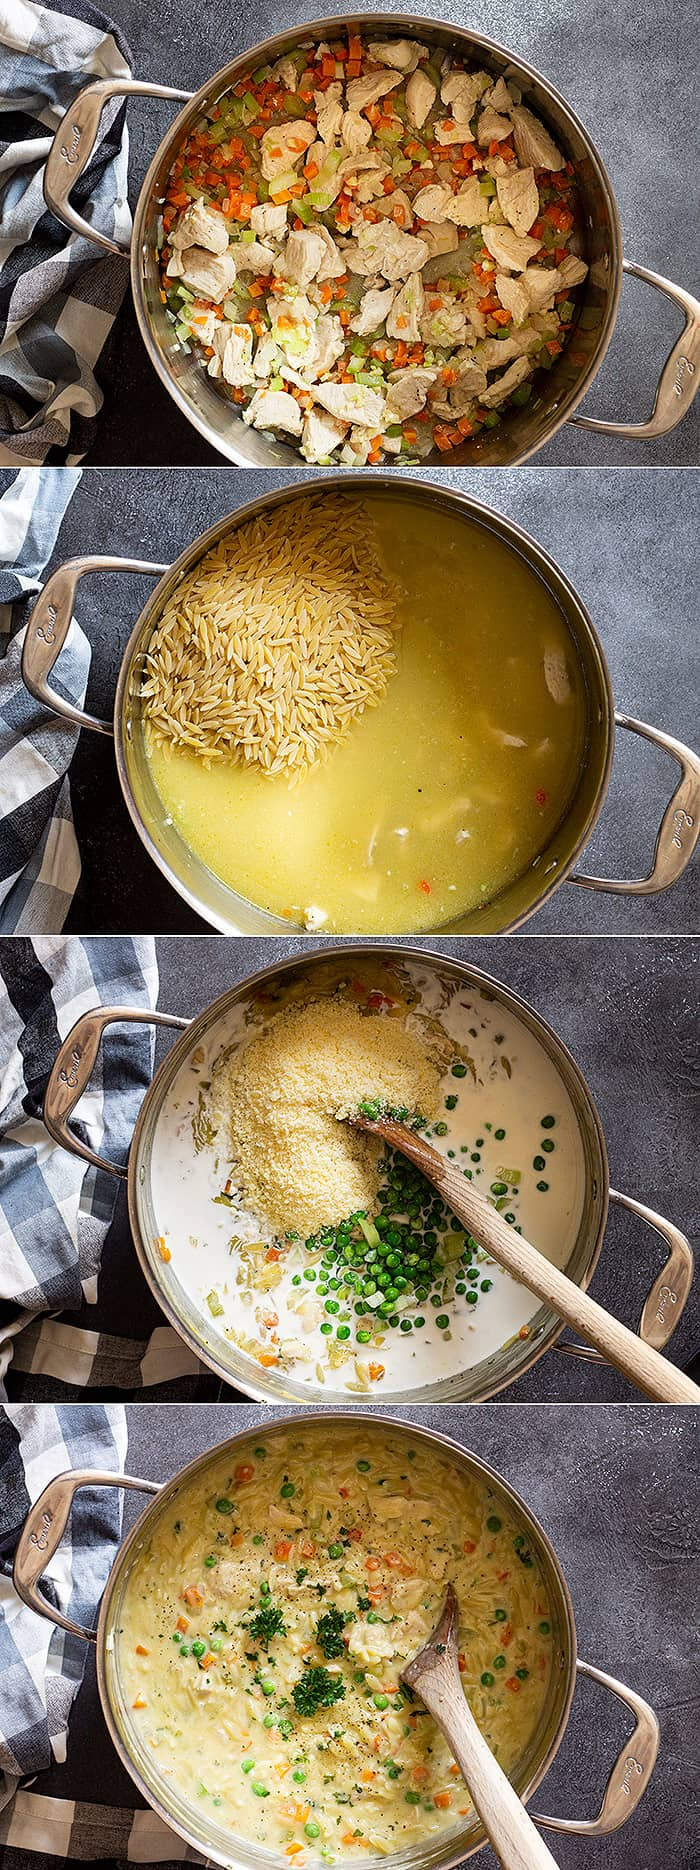 Four pictures showing the steps to make this comforting dish.